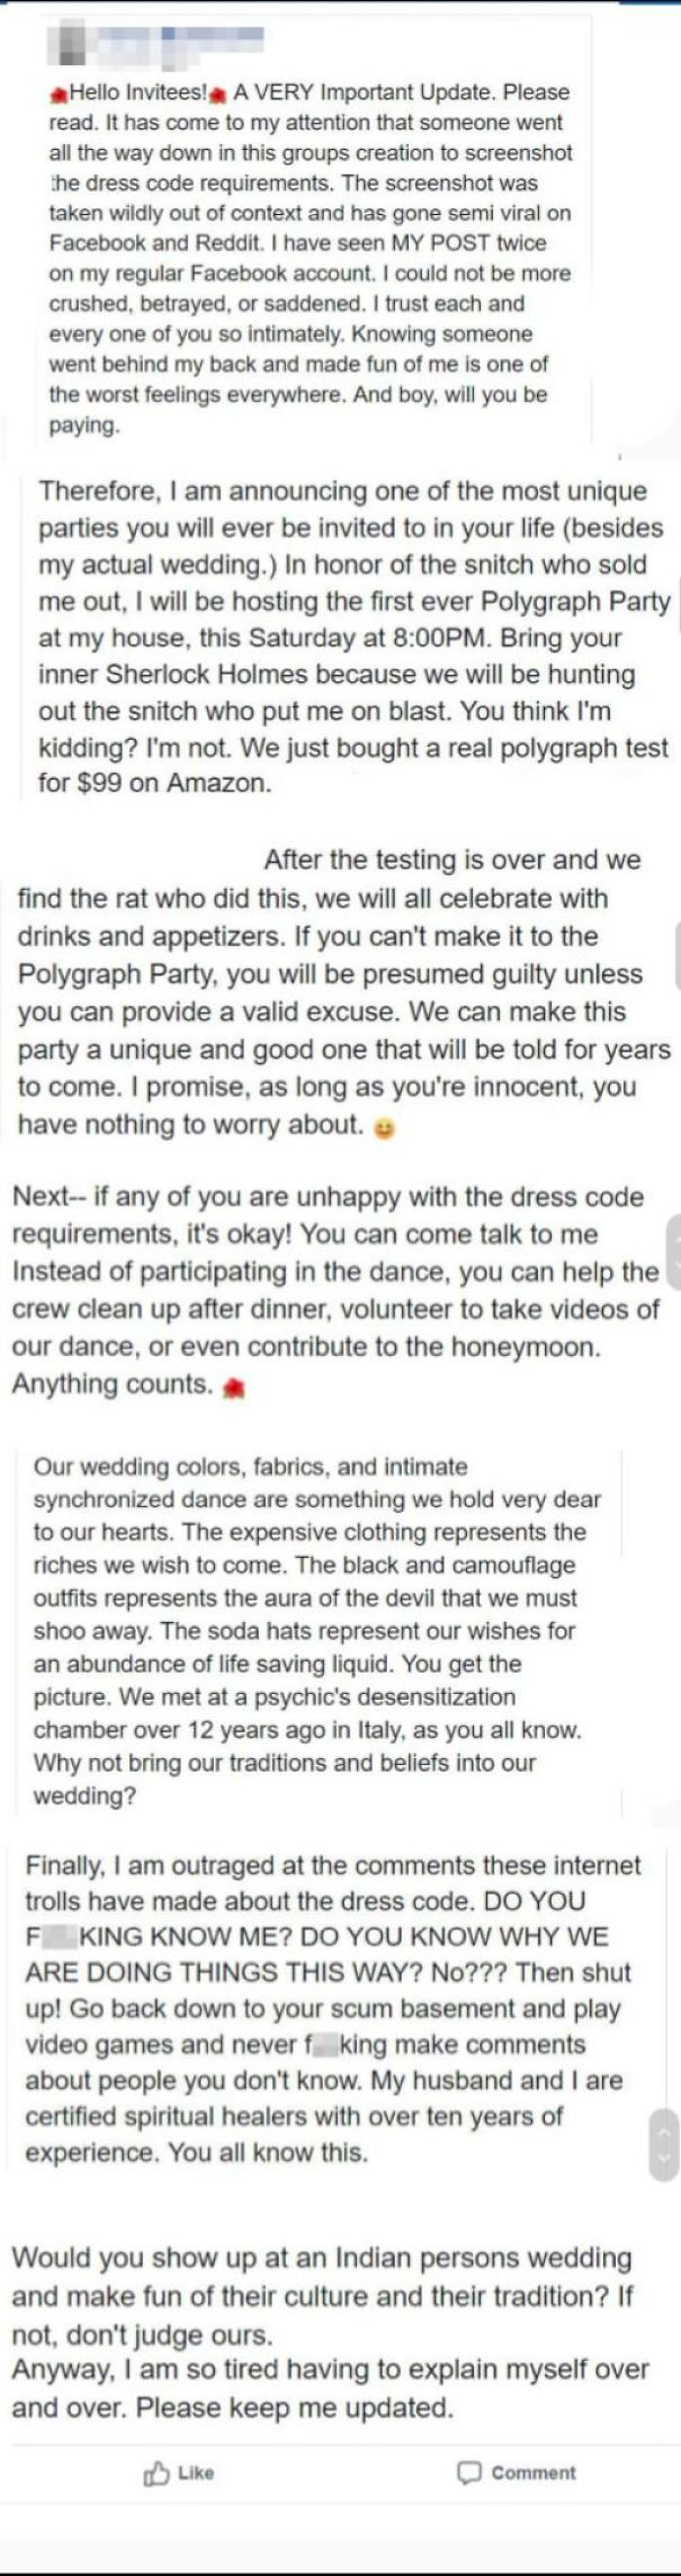 Bride Freaks Out After Finding Her Own Post On Reddit